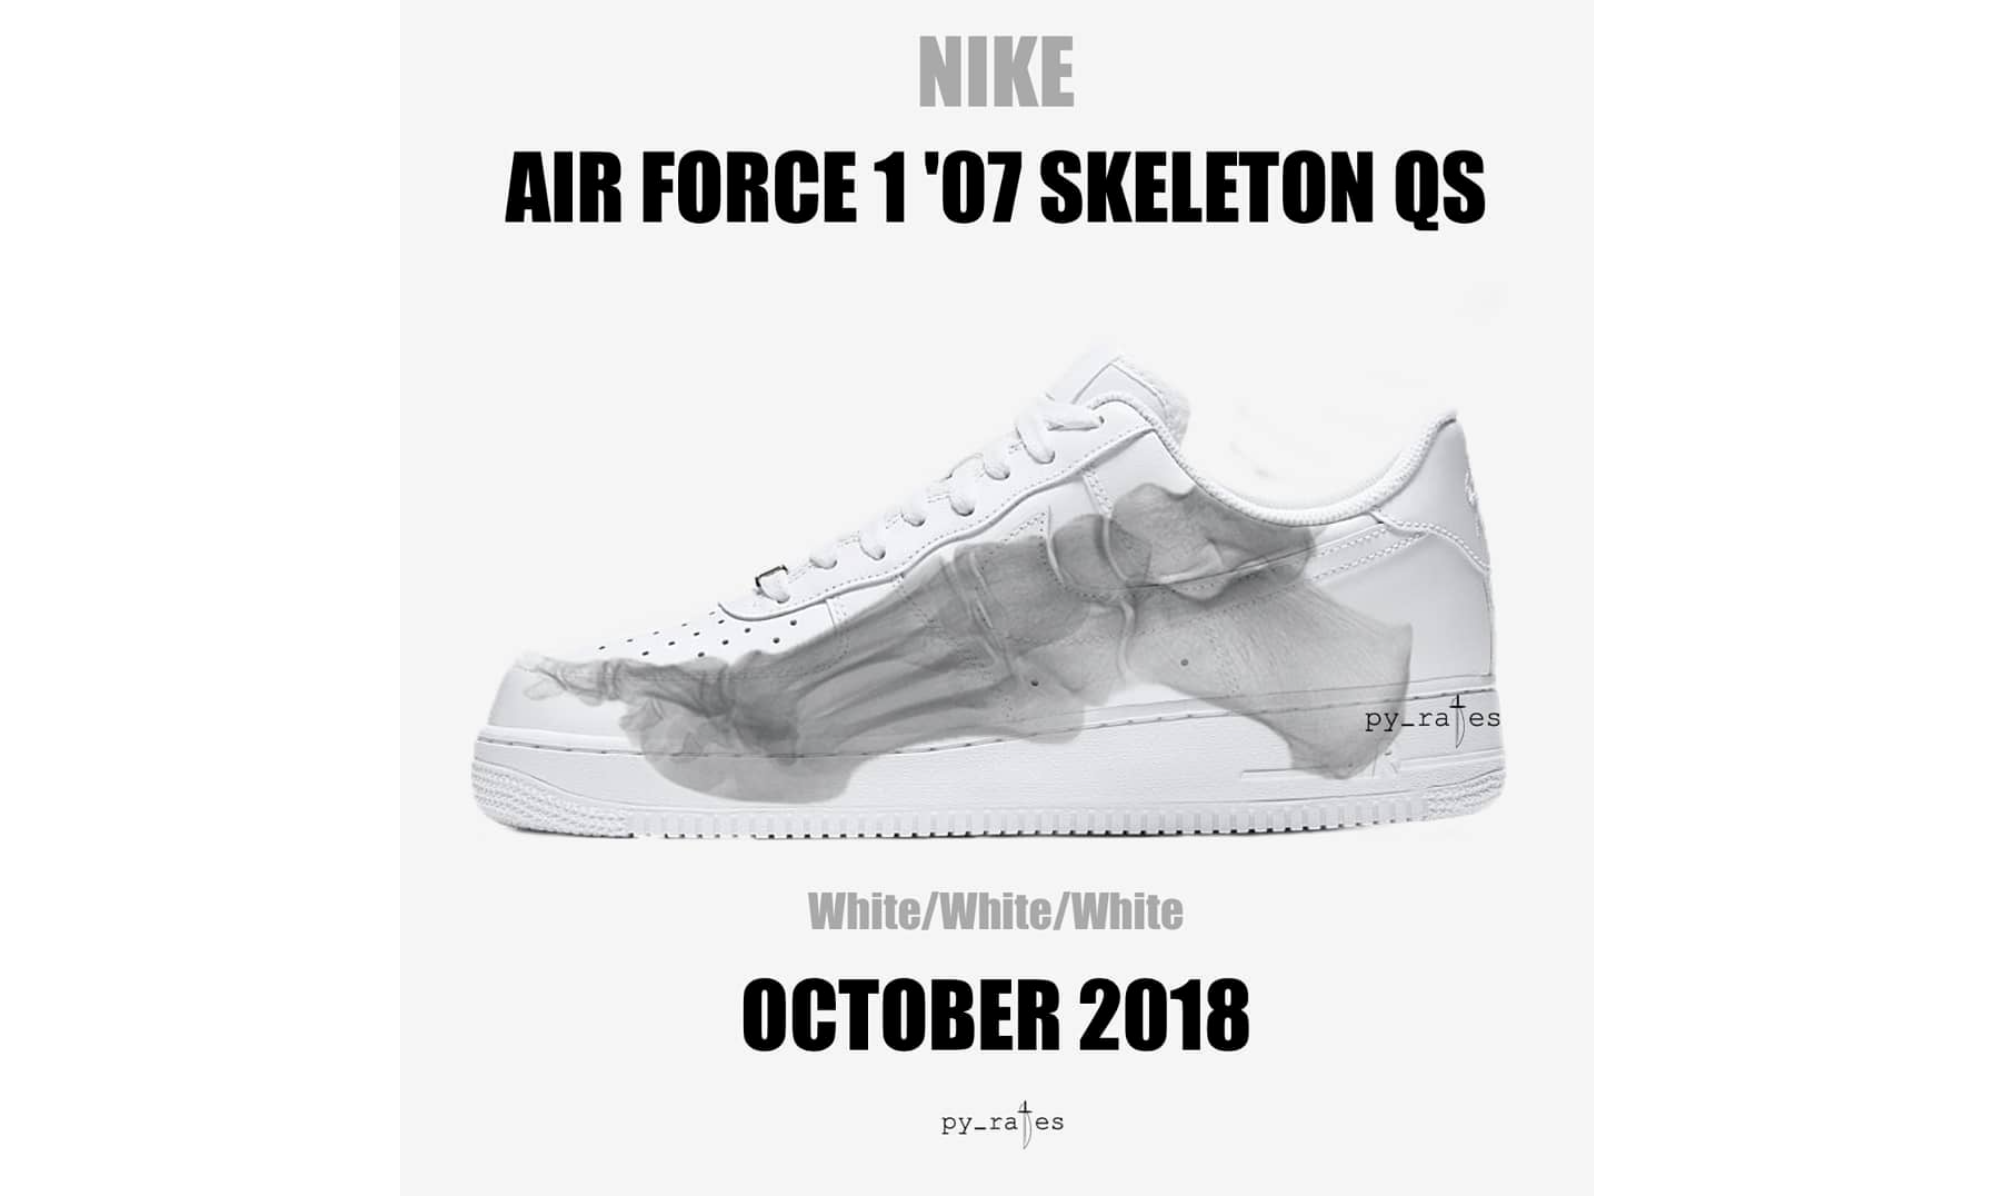 separation shoes 8ba29 90d4c 骨骼图案贯穿鞋身,Air Force 1 07 Skeleton QS 释出